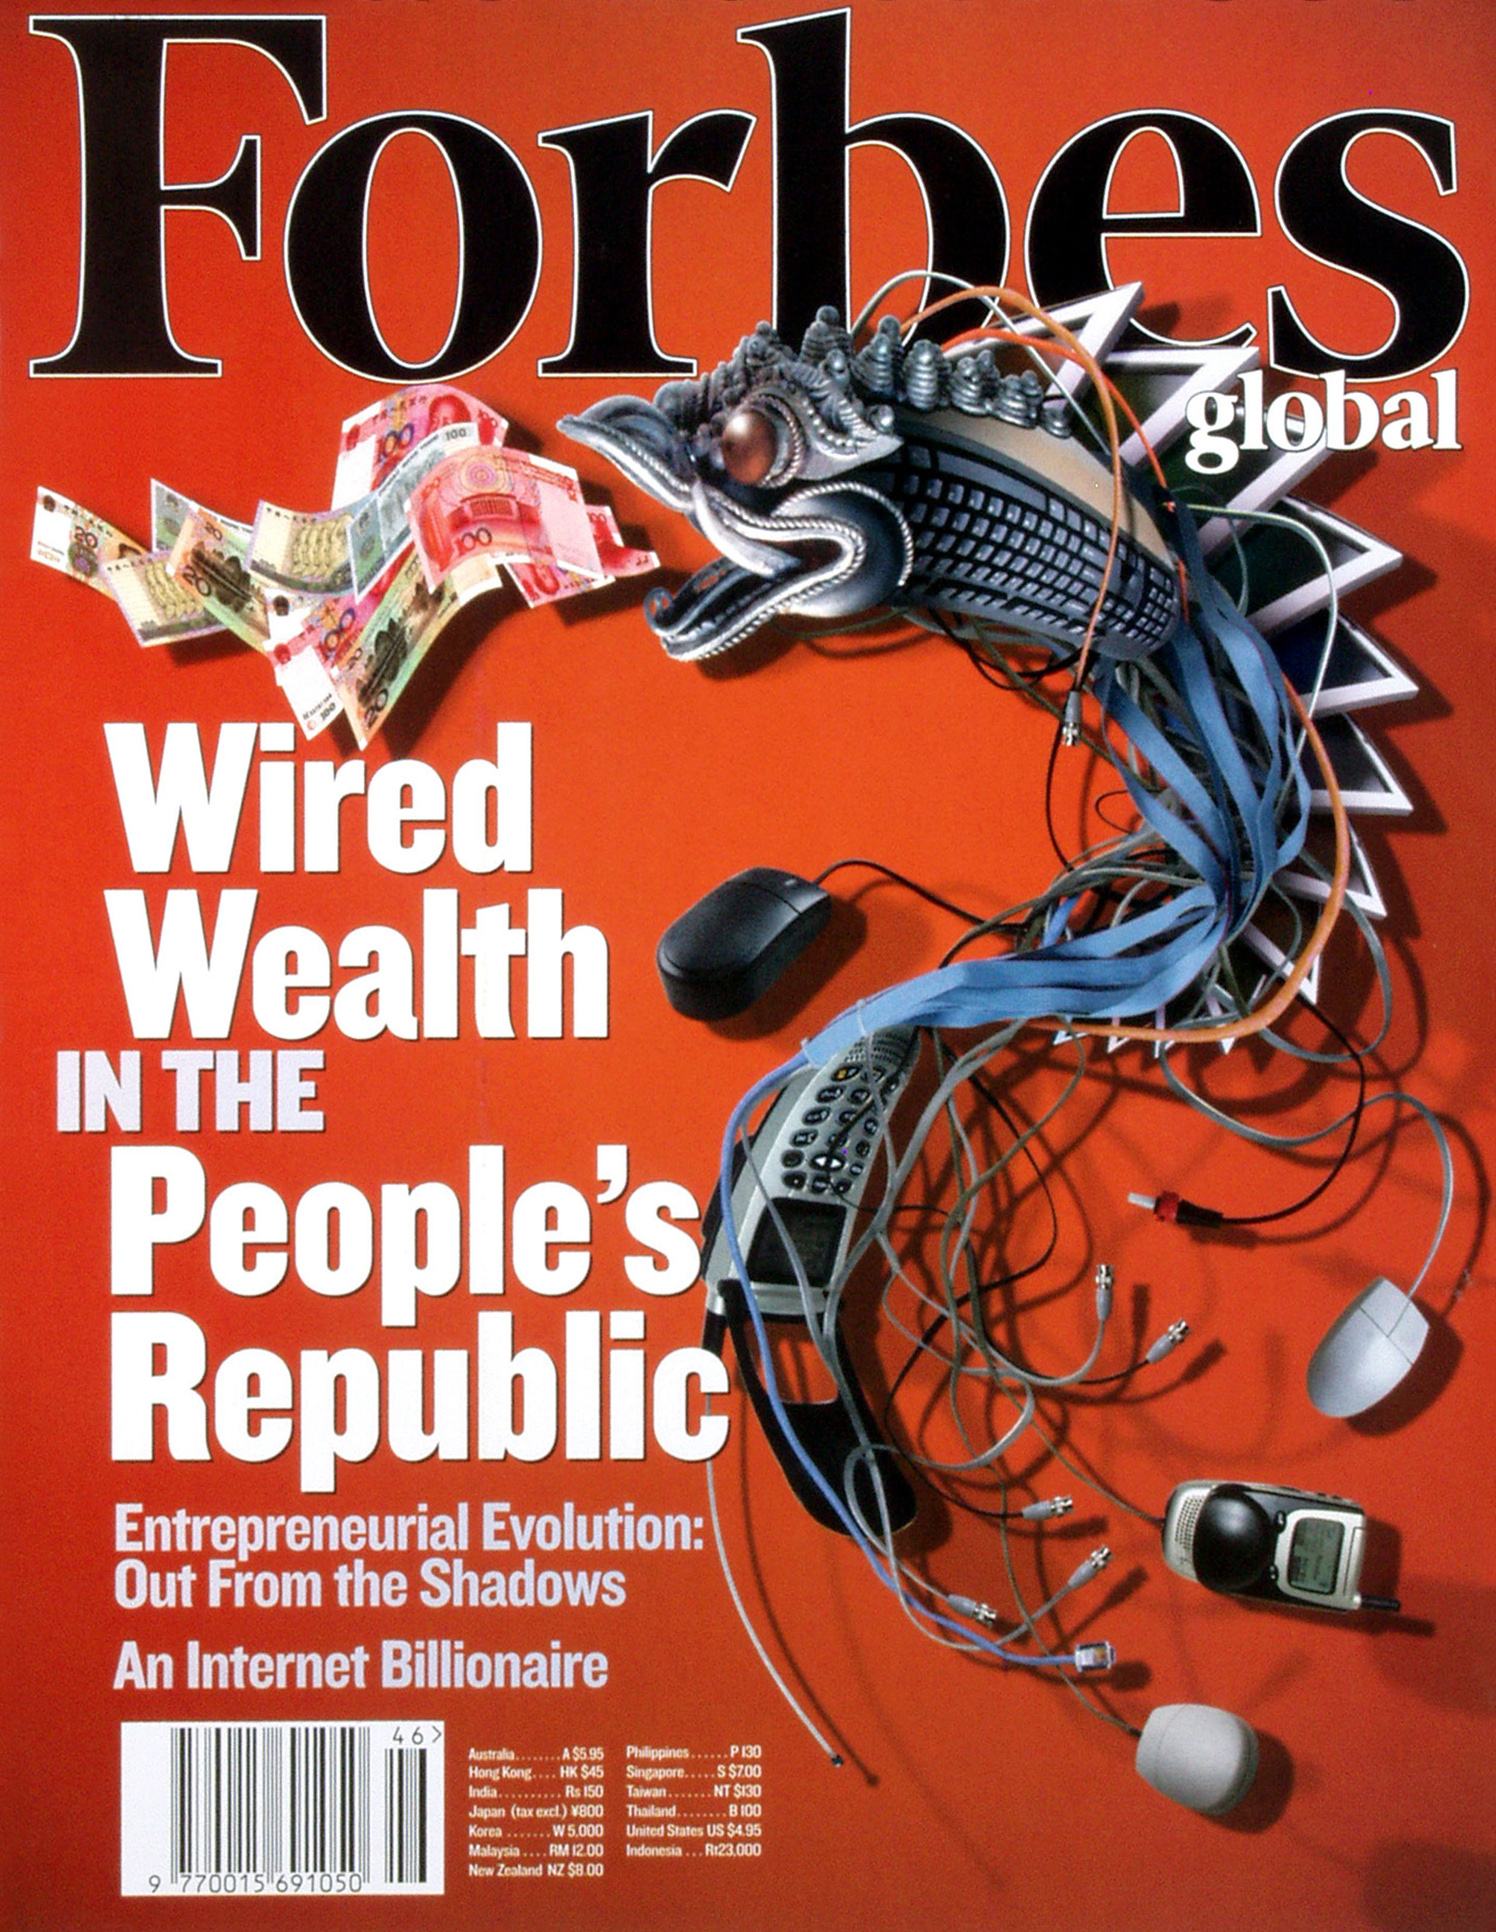 Forbes Wired Wealth